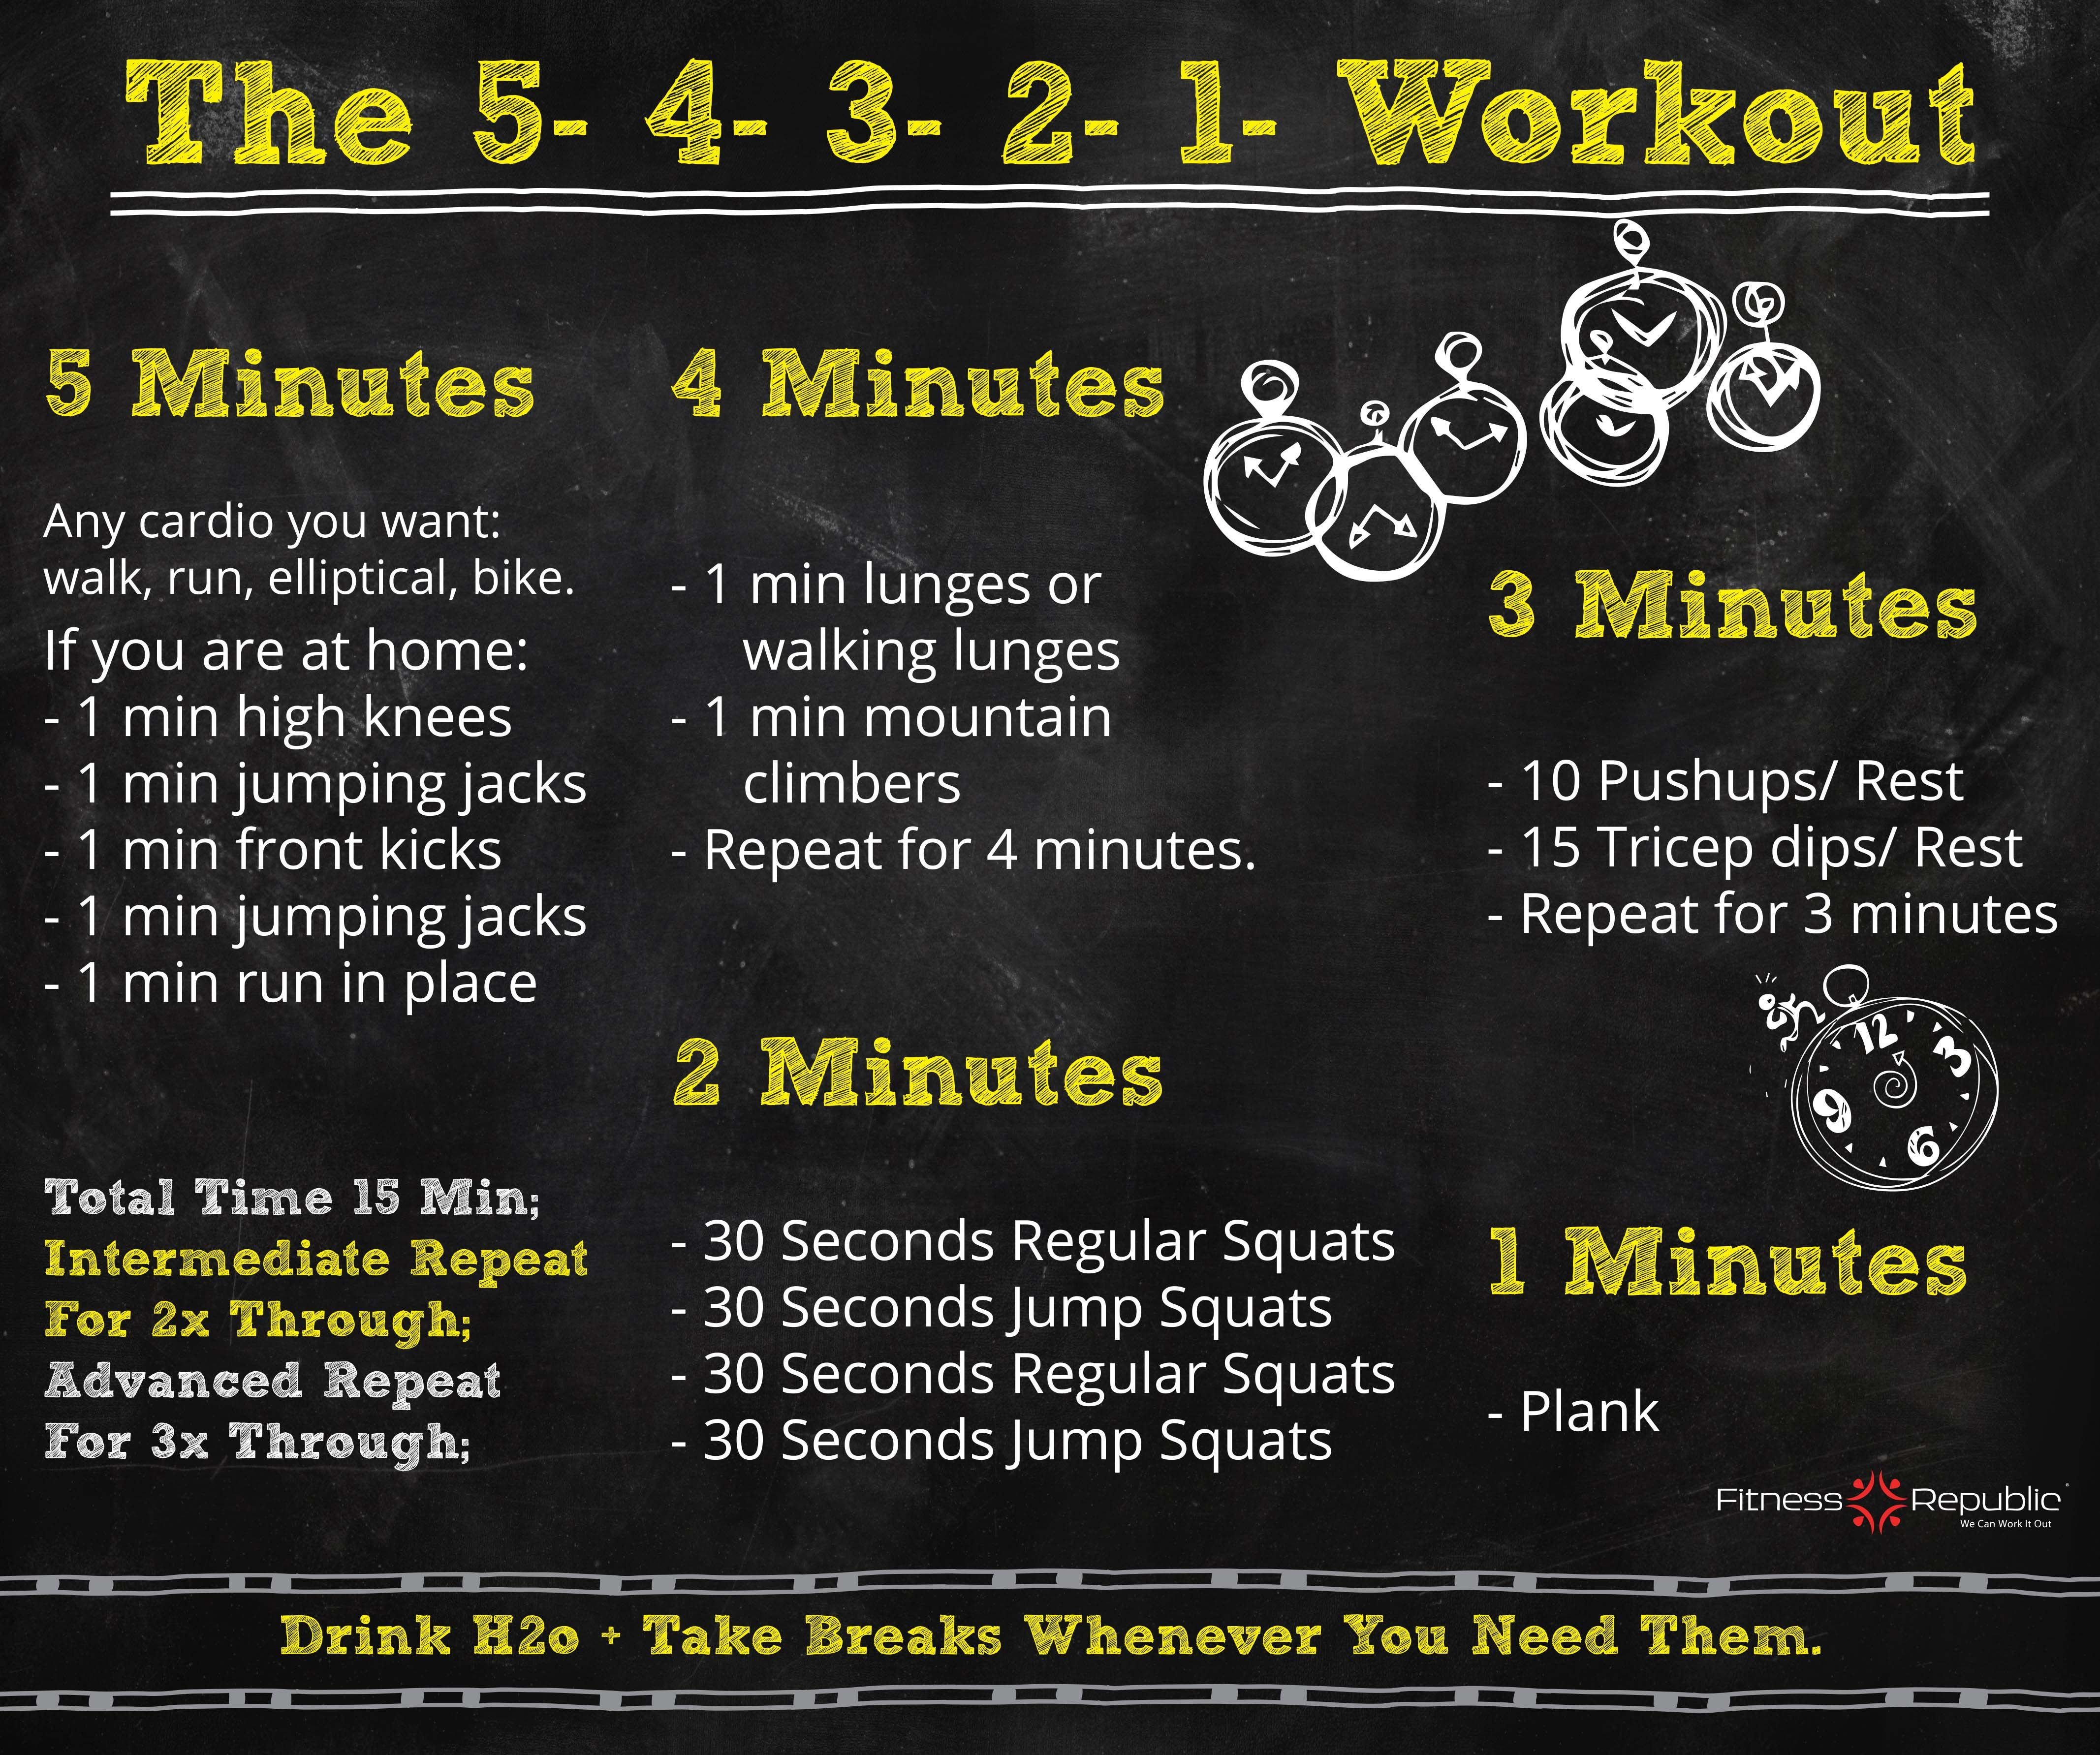 Here you go! Another simple workout routine to squeeze in your day!This workout routine is just fifteen minutes long and is perfect to incorporate in your day. The 5-4-3-2-1 workout targets all the muscles in your legs, torso, core, chest, shoulders, and triceps. Feel free to take as many breaks as you need and make sure you hydrate well.